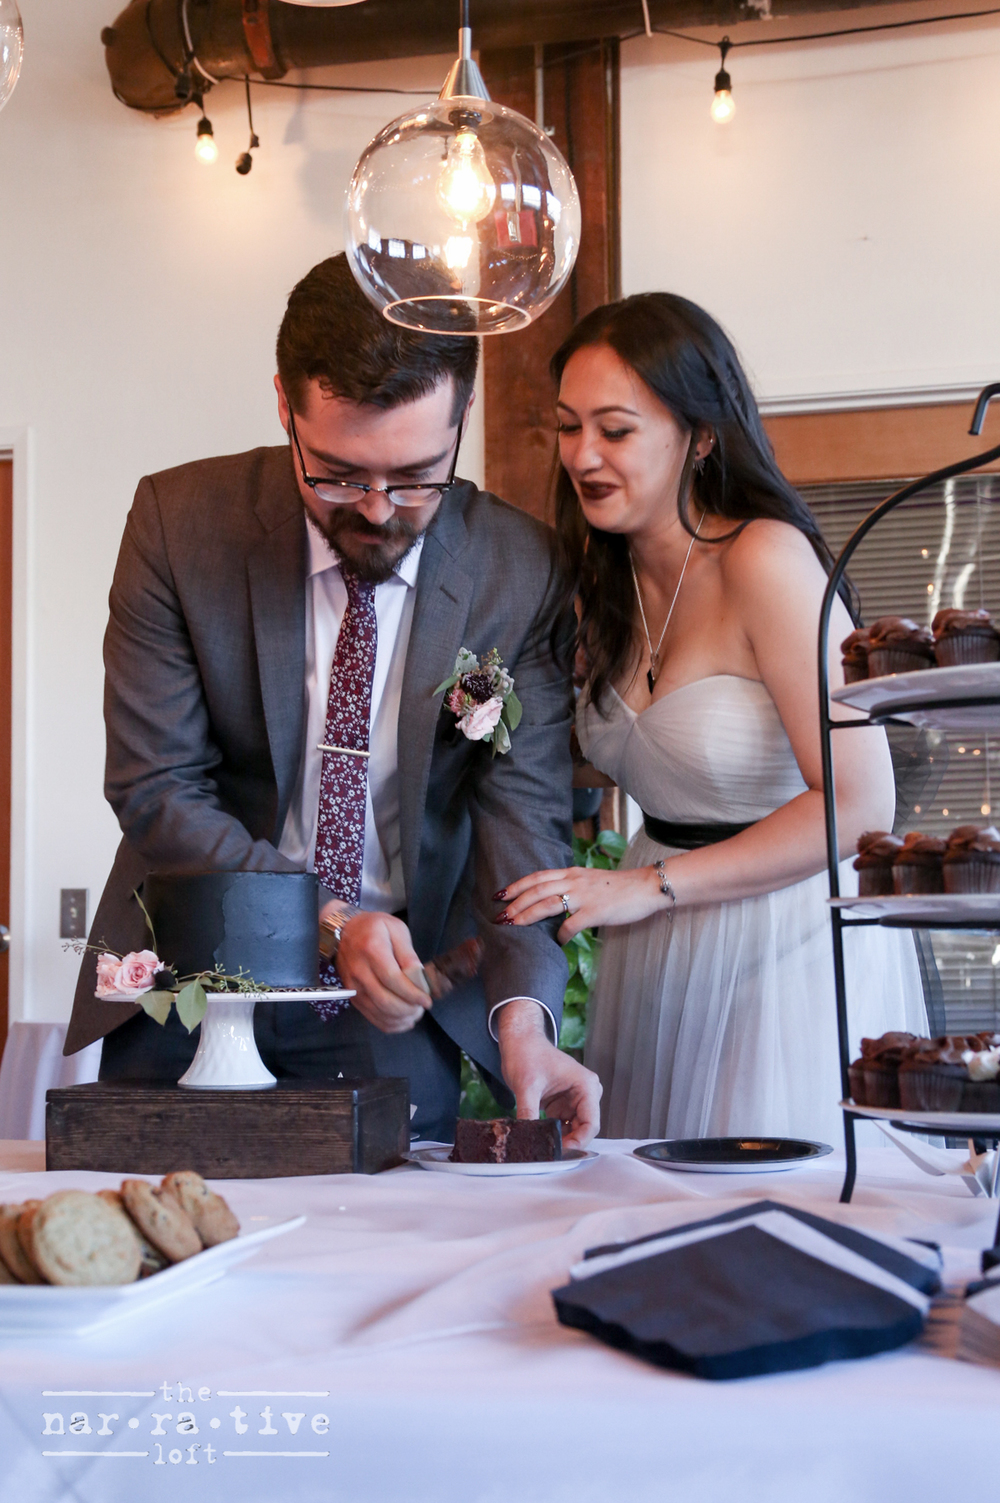 A sweet moment between Ken and Ashley cutting the cake.